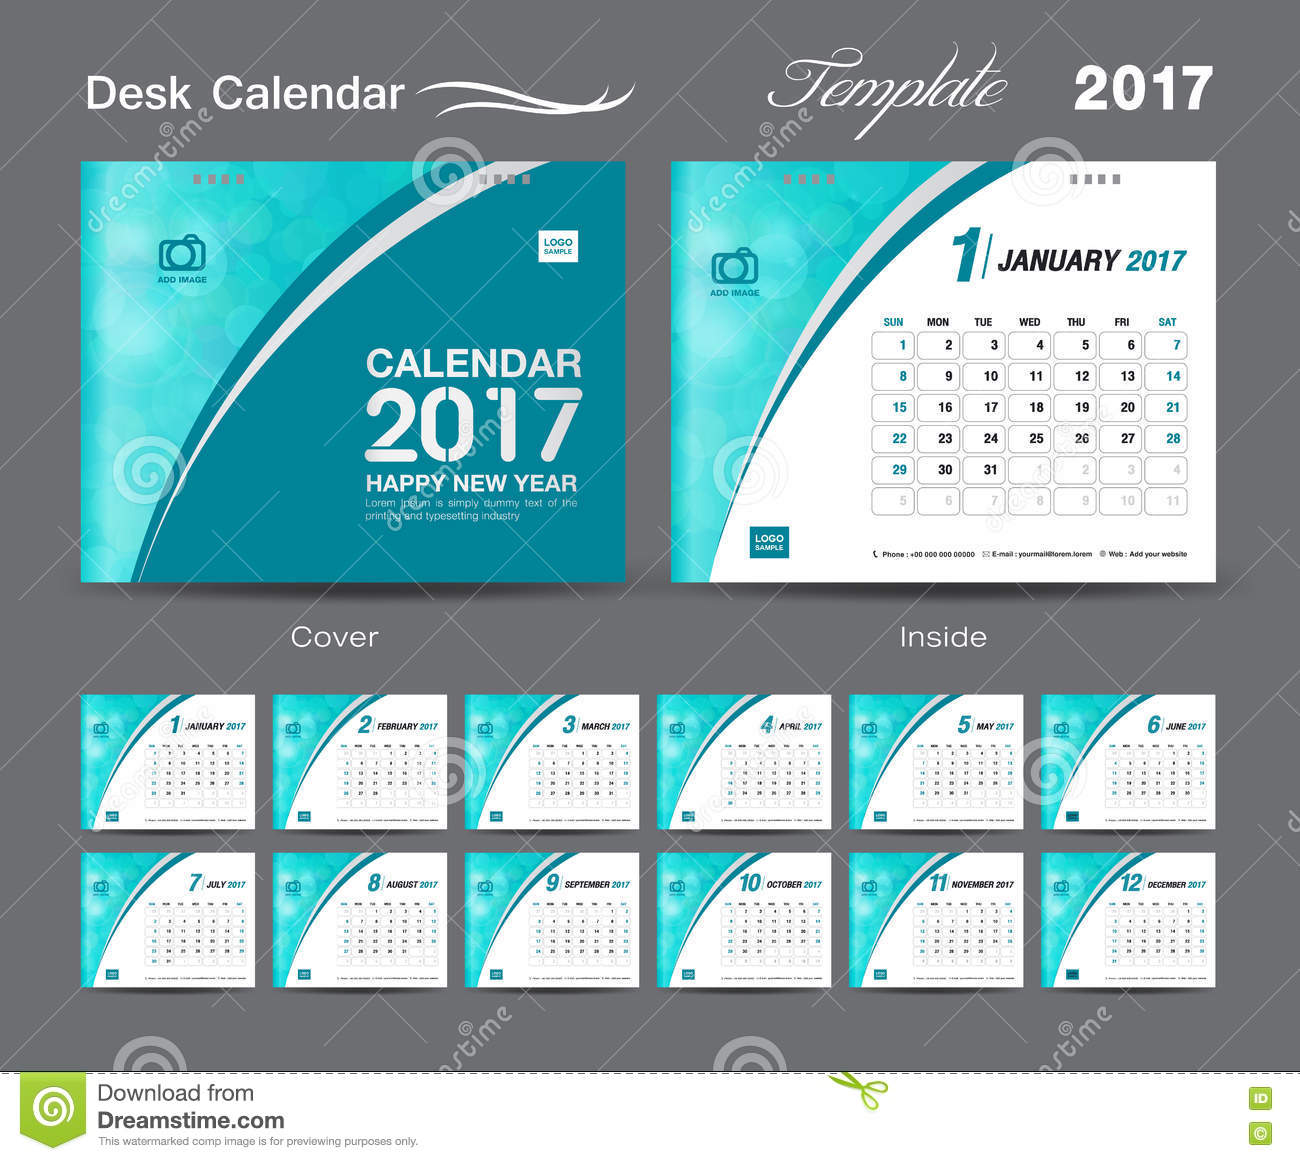 Calendar Green : Desk calendar template design set cover